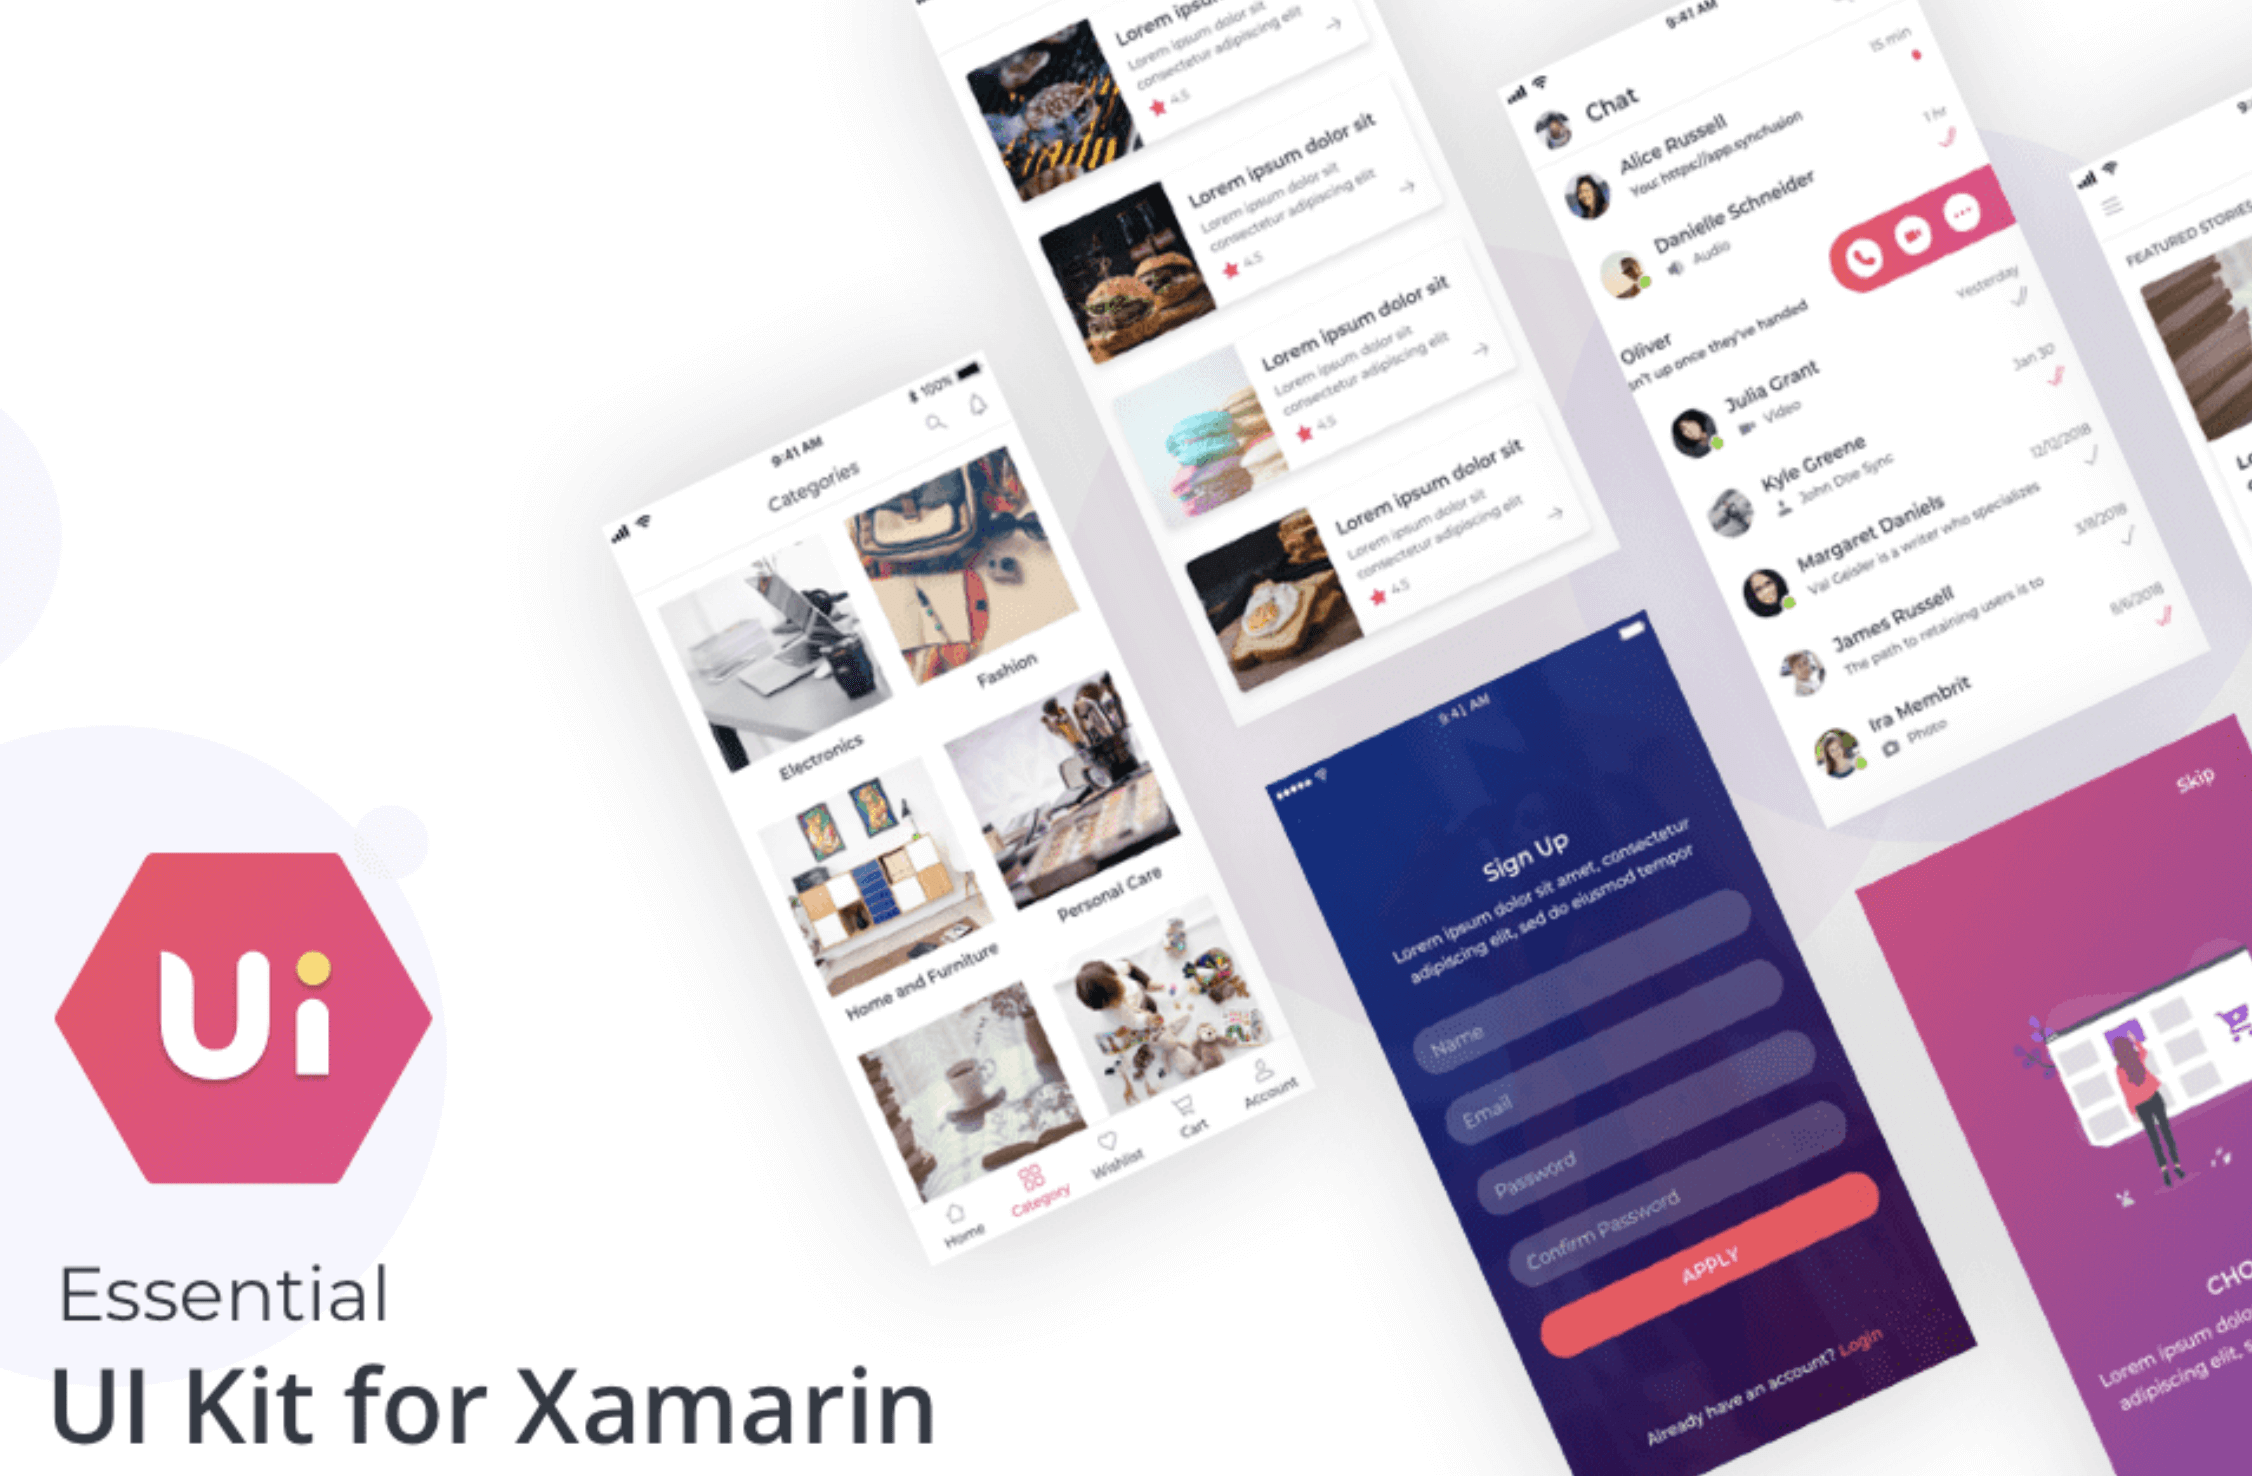 Essential UI kit for Xamarin